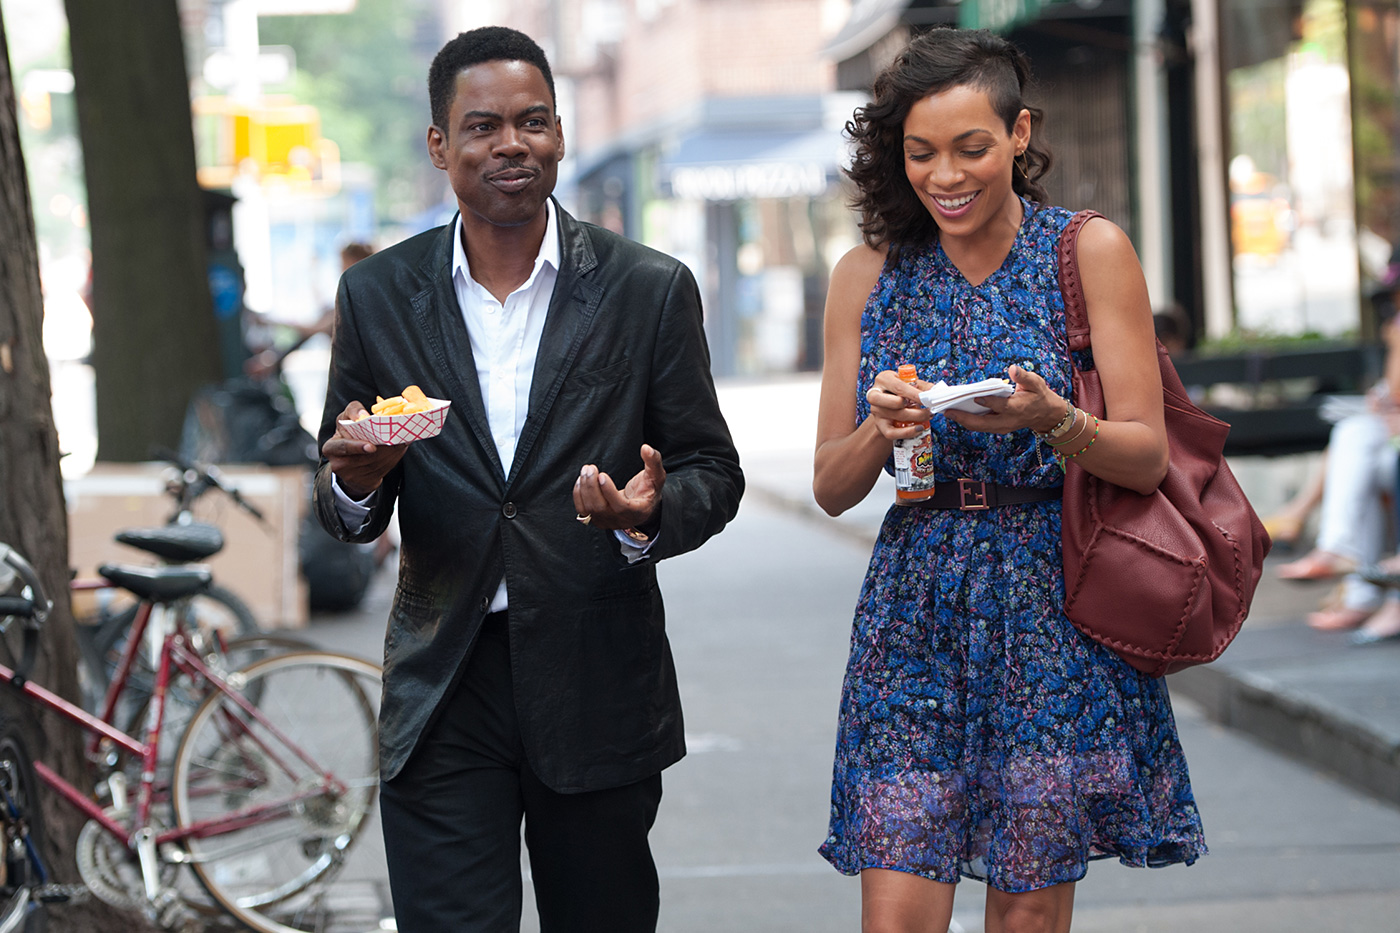 TRAILER: Rosario Dawson Stars in Chris Rock's Comedy on Being Black & Famous in Post-Racial America